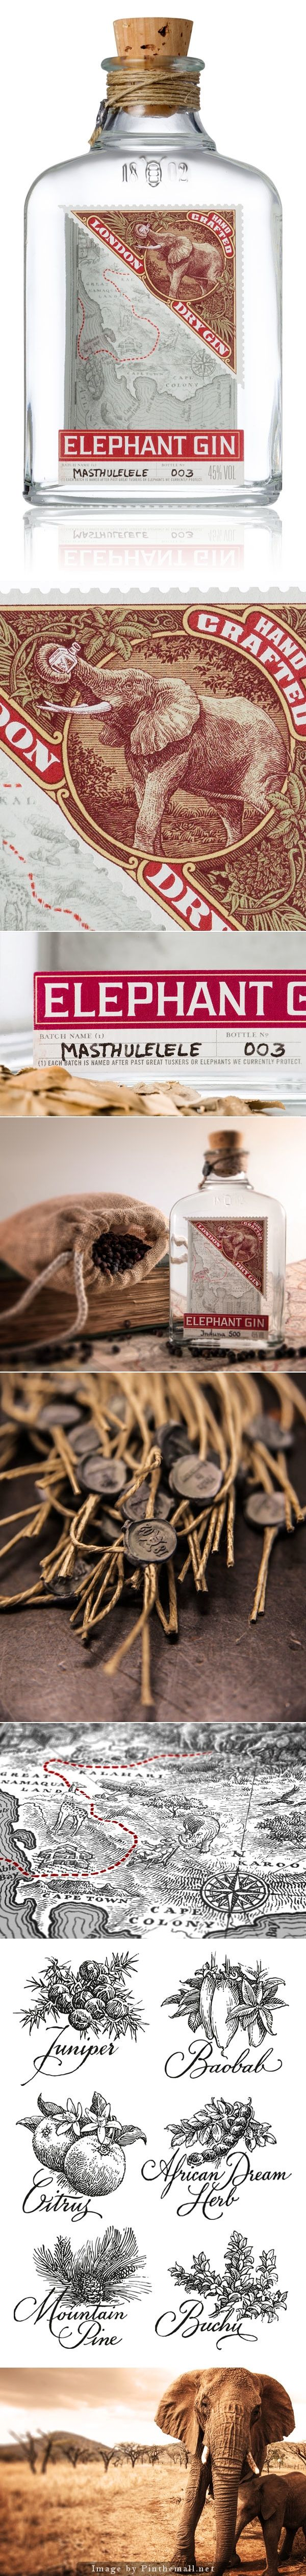 Elephant Gin | handcrafted London Dry #Gin #packaging inspired by the pioneering spirit of early explorers of Africa. | by simon frouws | Behance PD